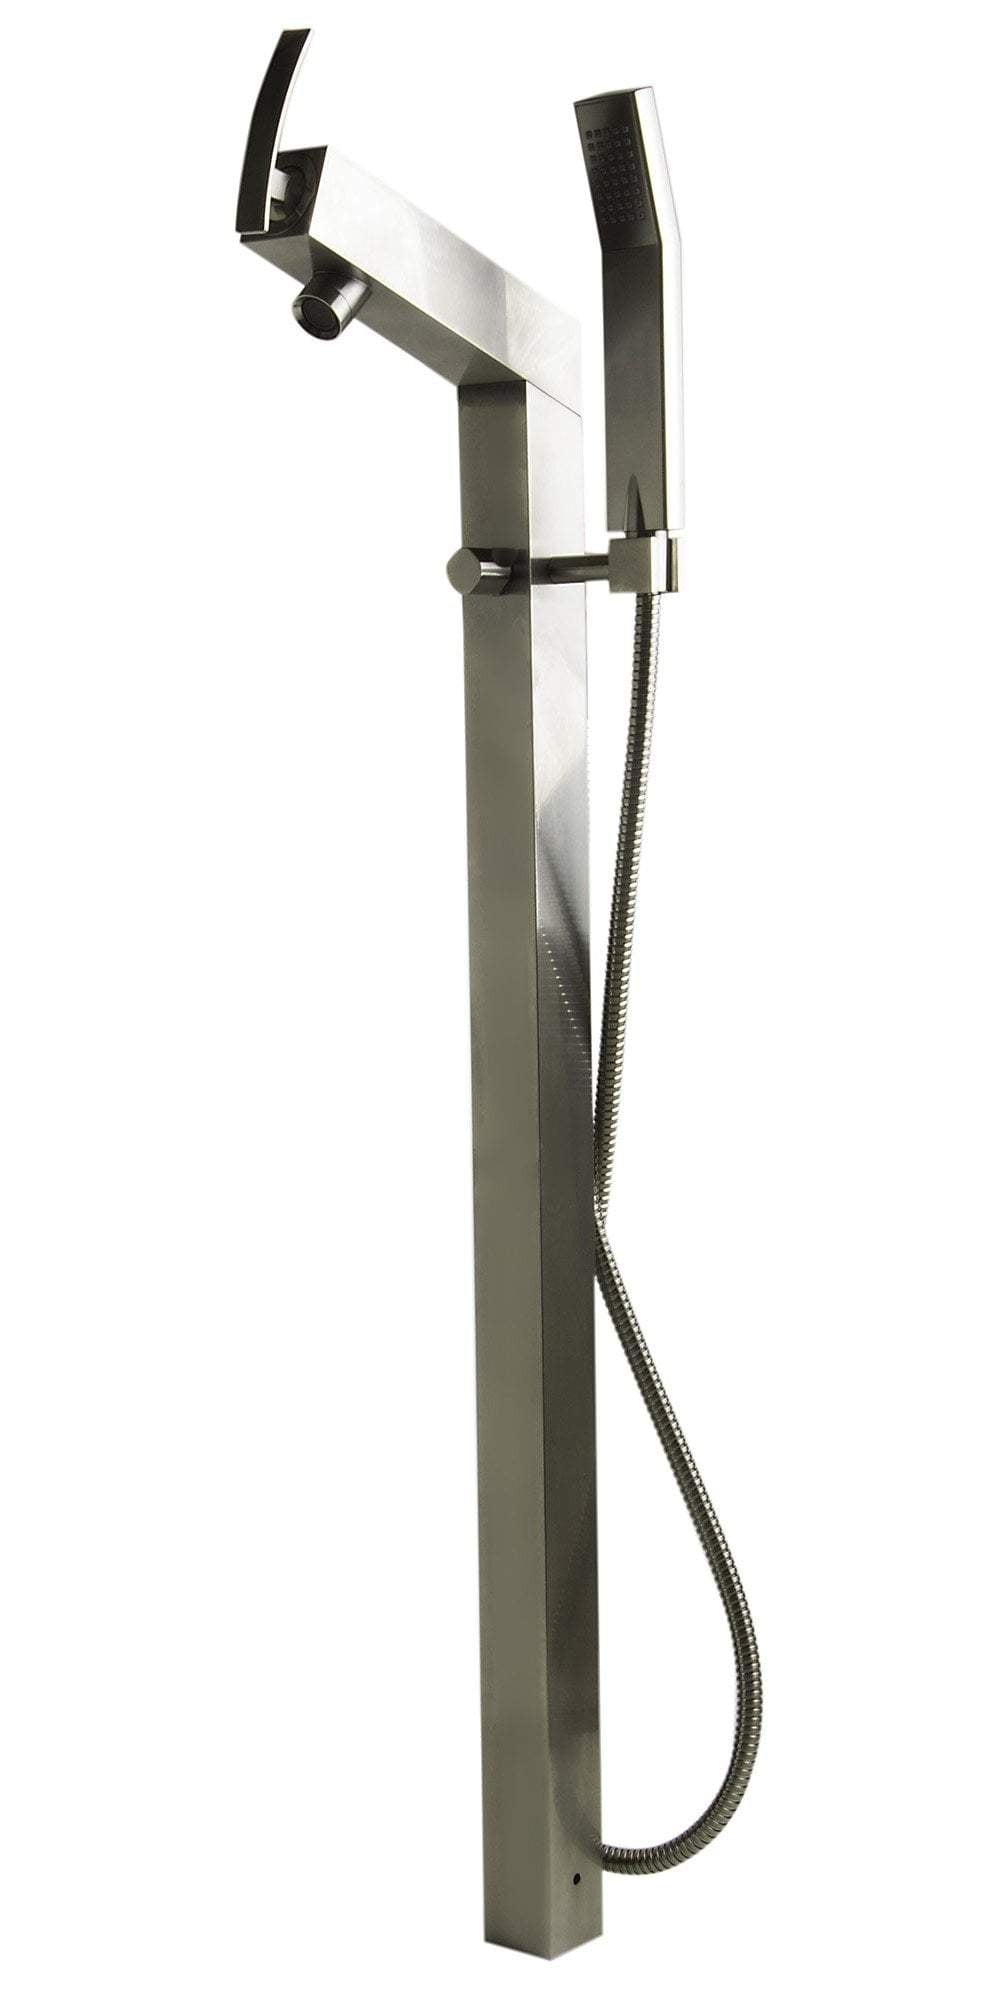 ALFI brand AB2728-BN Brushed Nickel Floor Mounted Tub Filler + Mixer /w additional Hand Held Shower Head